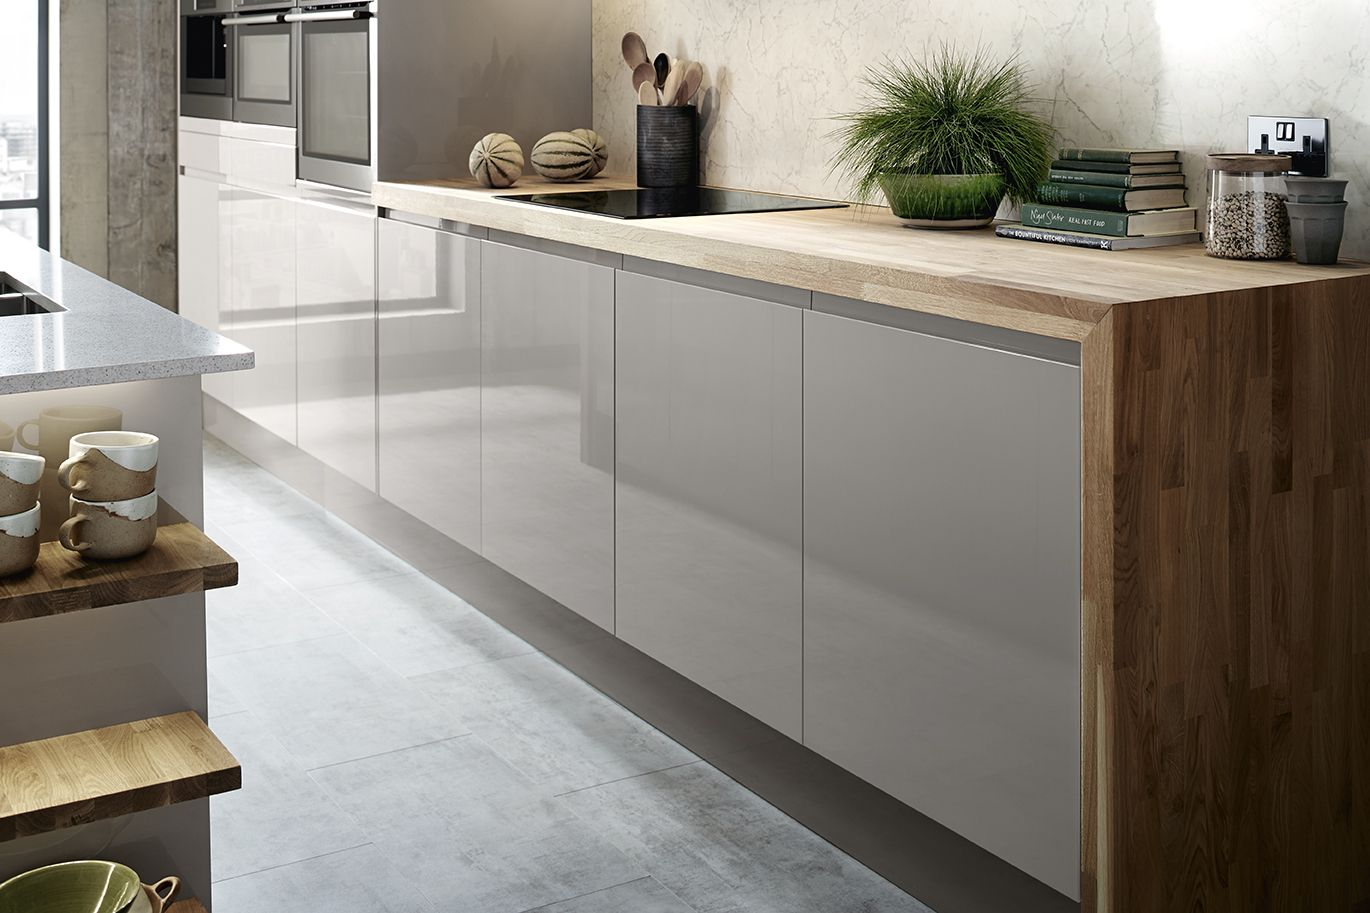 The Bayswater Gloss Cashmere Kitchen Range from Howdens